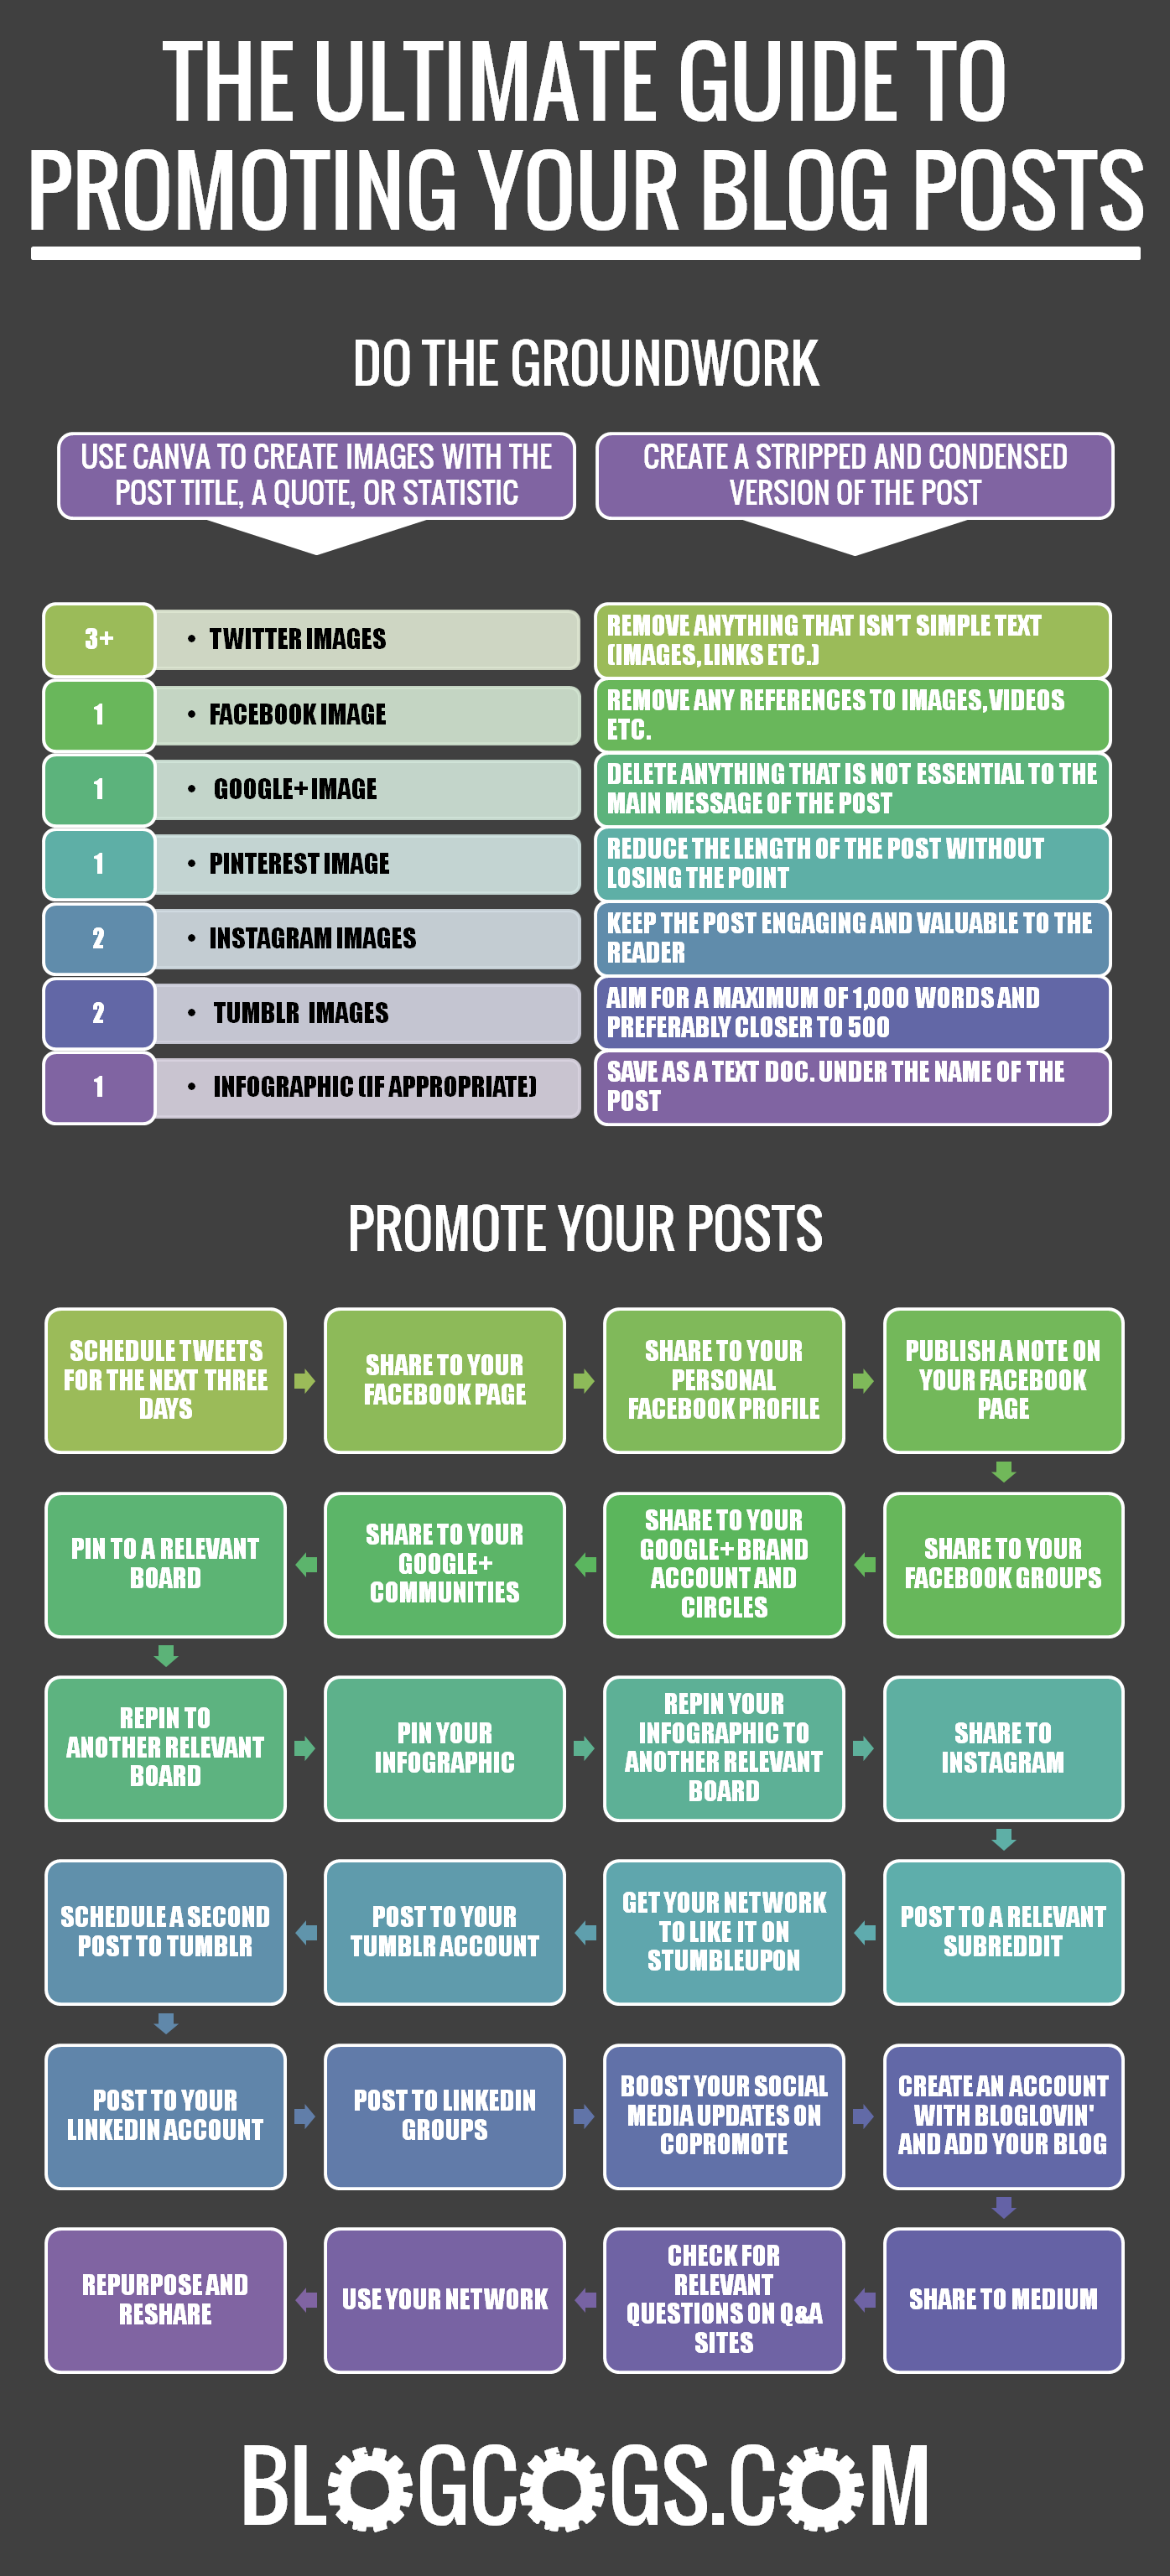 Promoting your blog posts is almost as important as writing quality content. This guide presents no less than 23 methods guaranteed to get your content seen and build your readership. #blogging #marketing #traffic